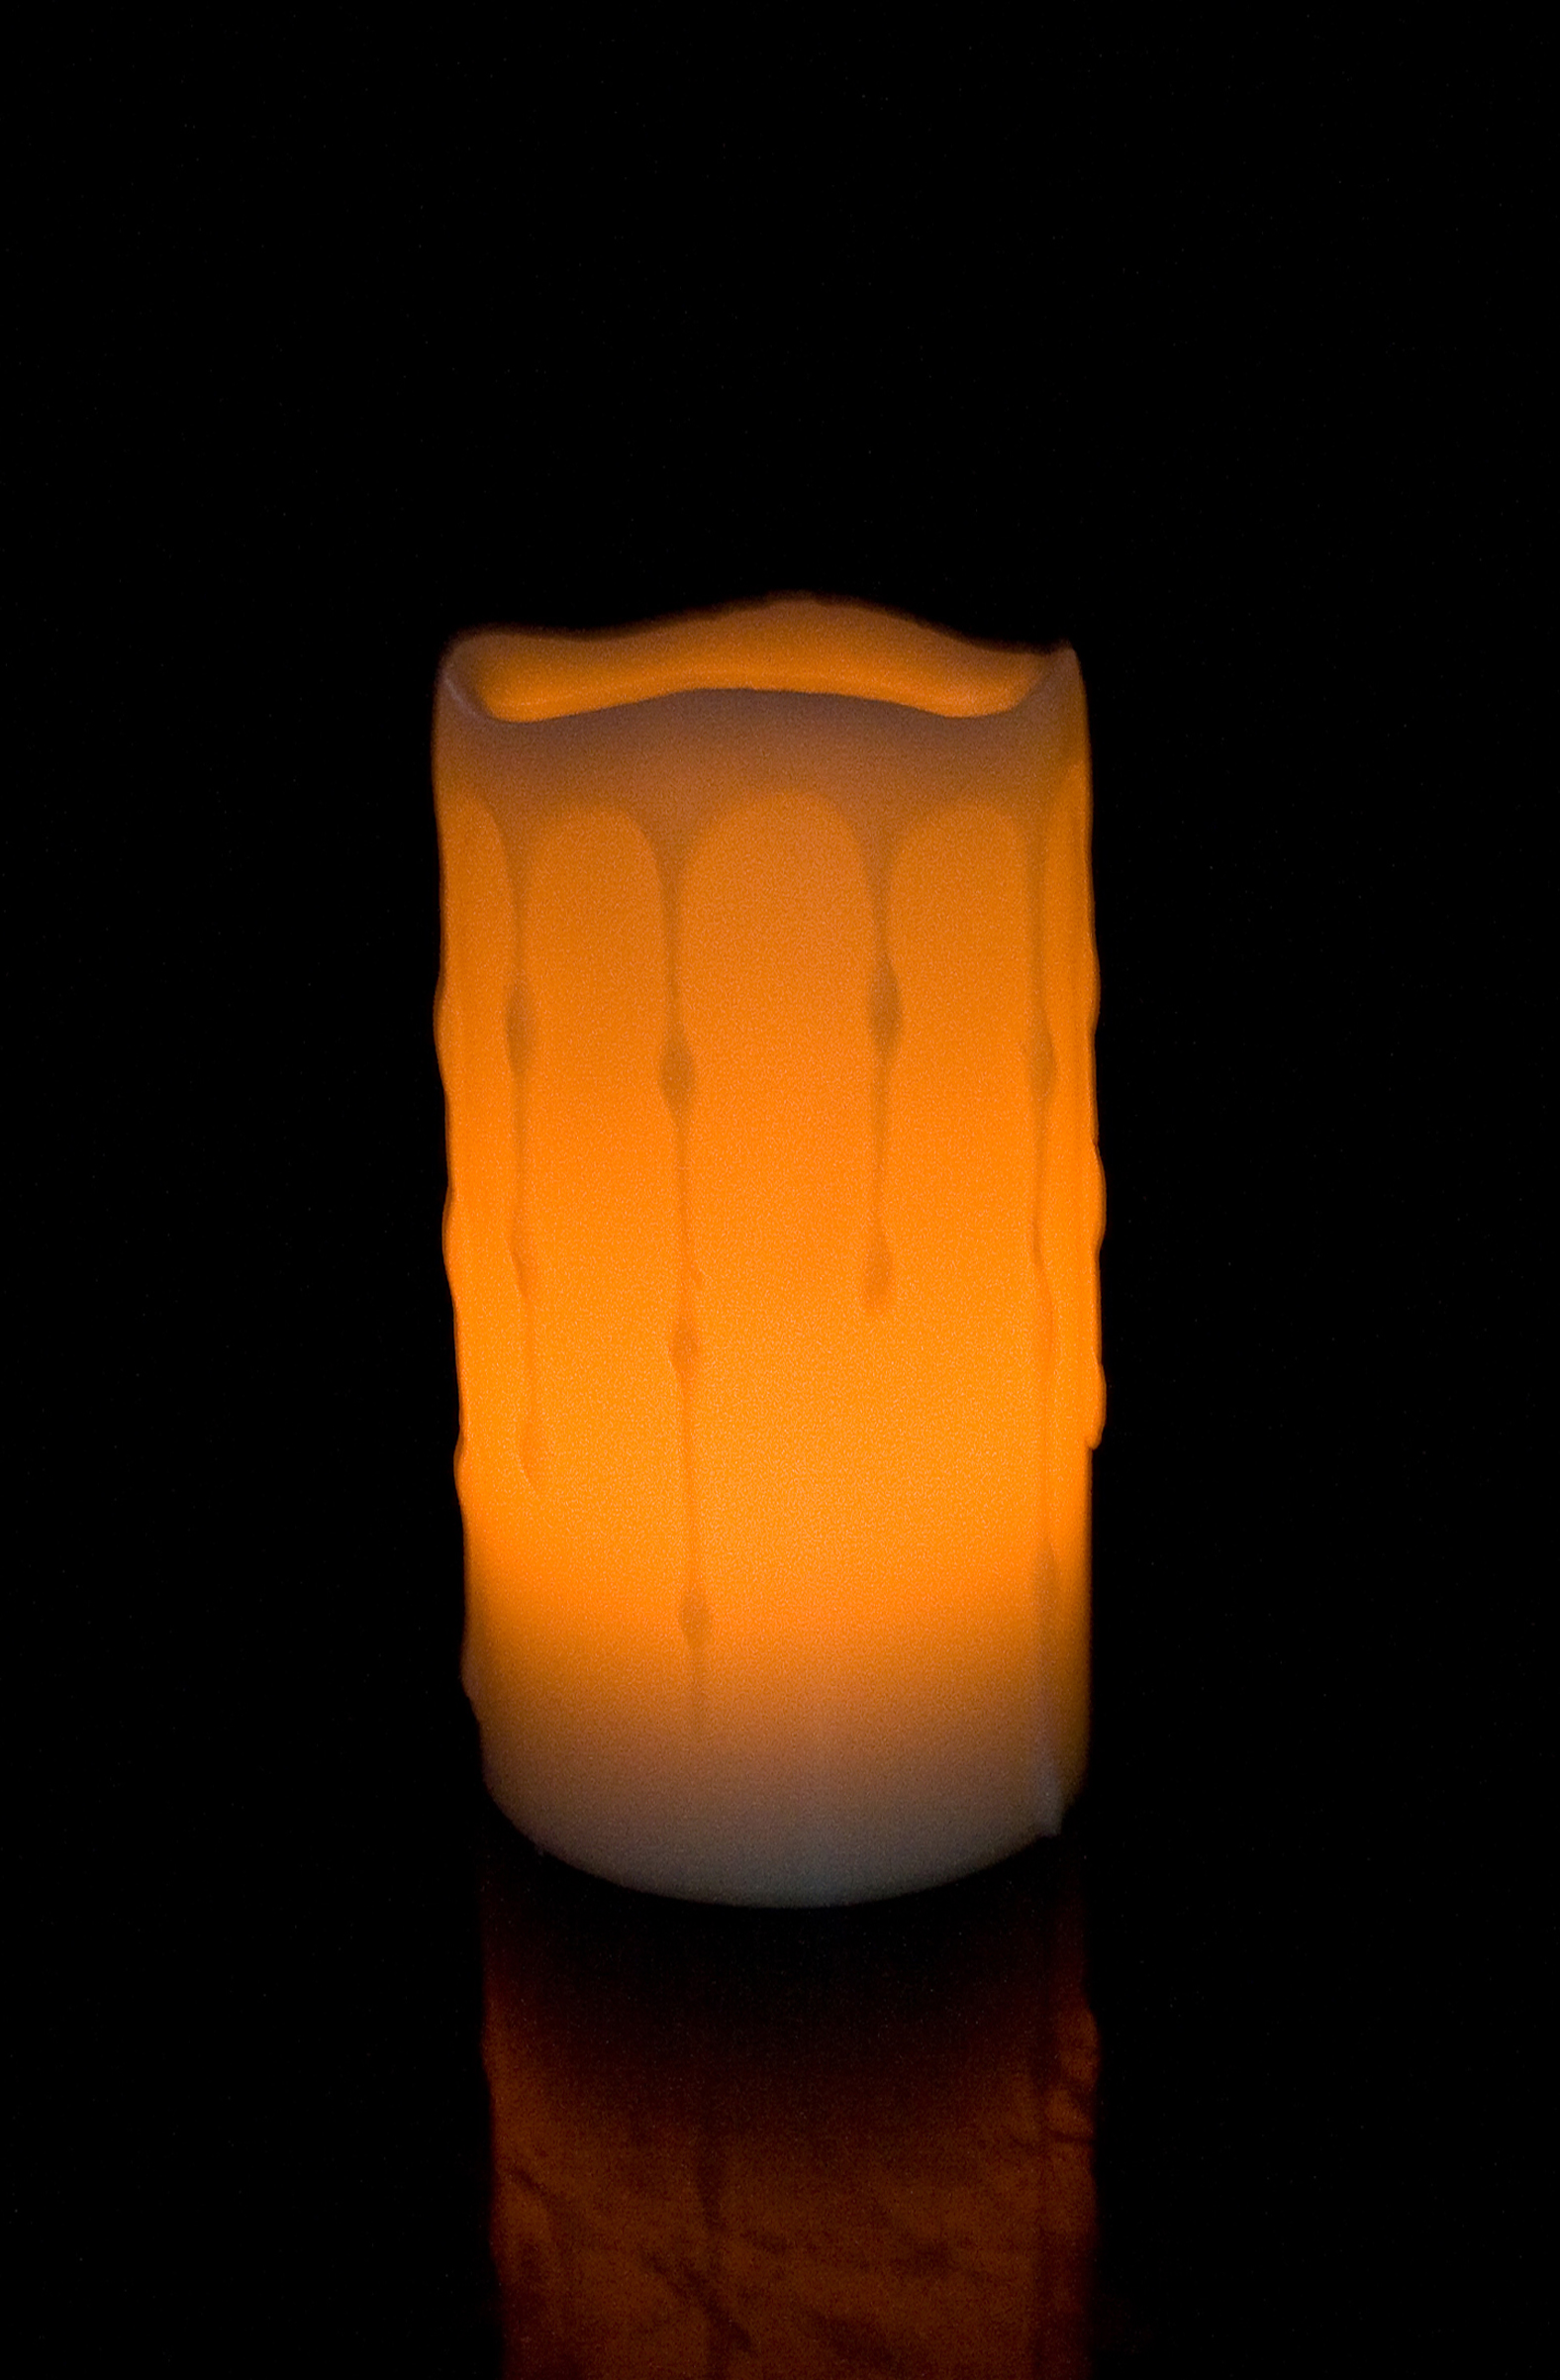 6 Inch Flameless Blow On-Off Pillar Candle - Melted Edge - Yellow